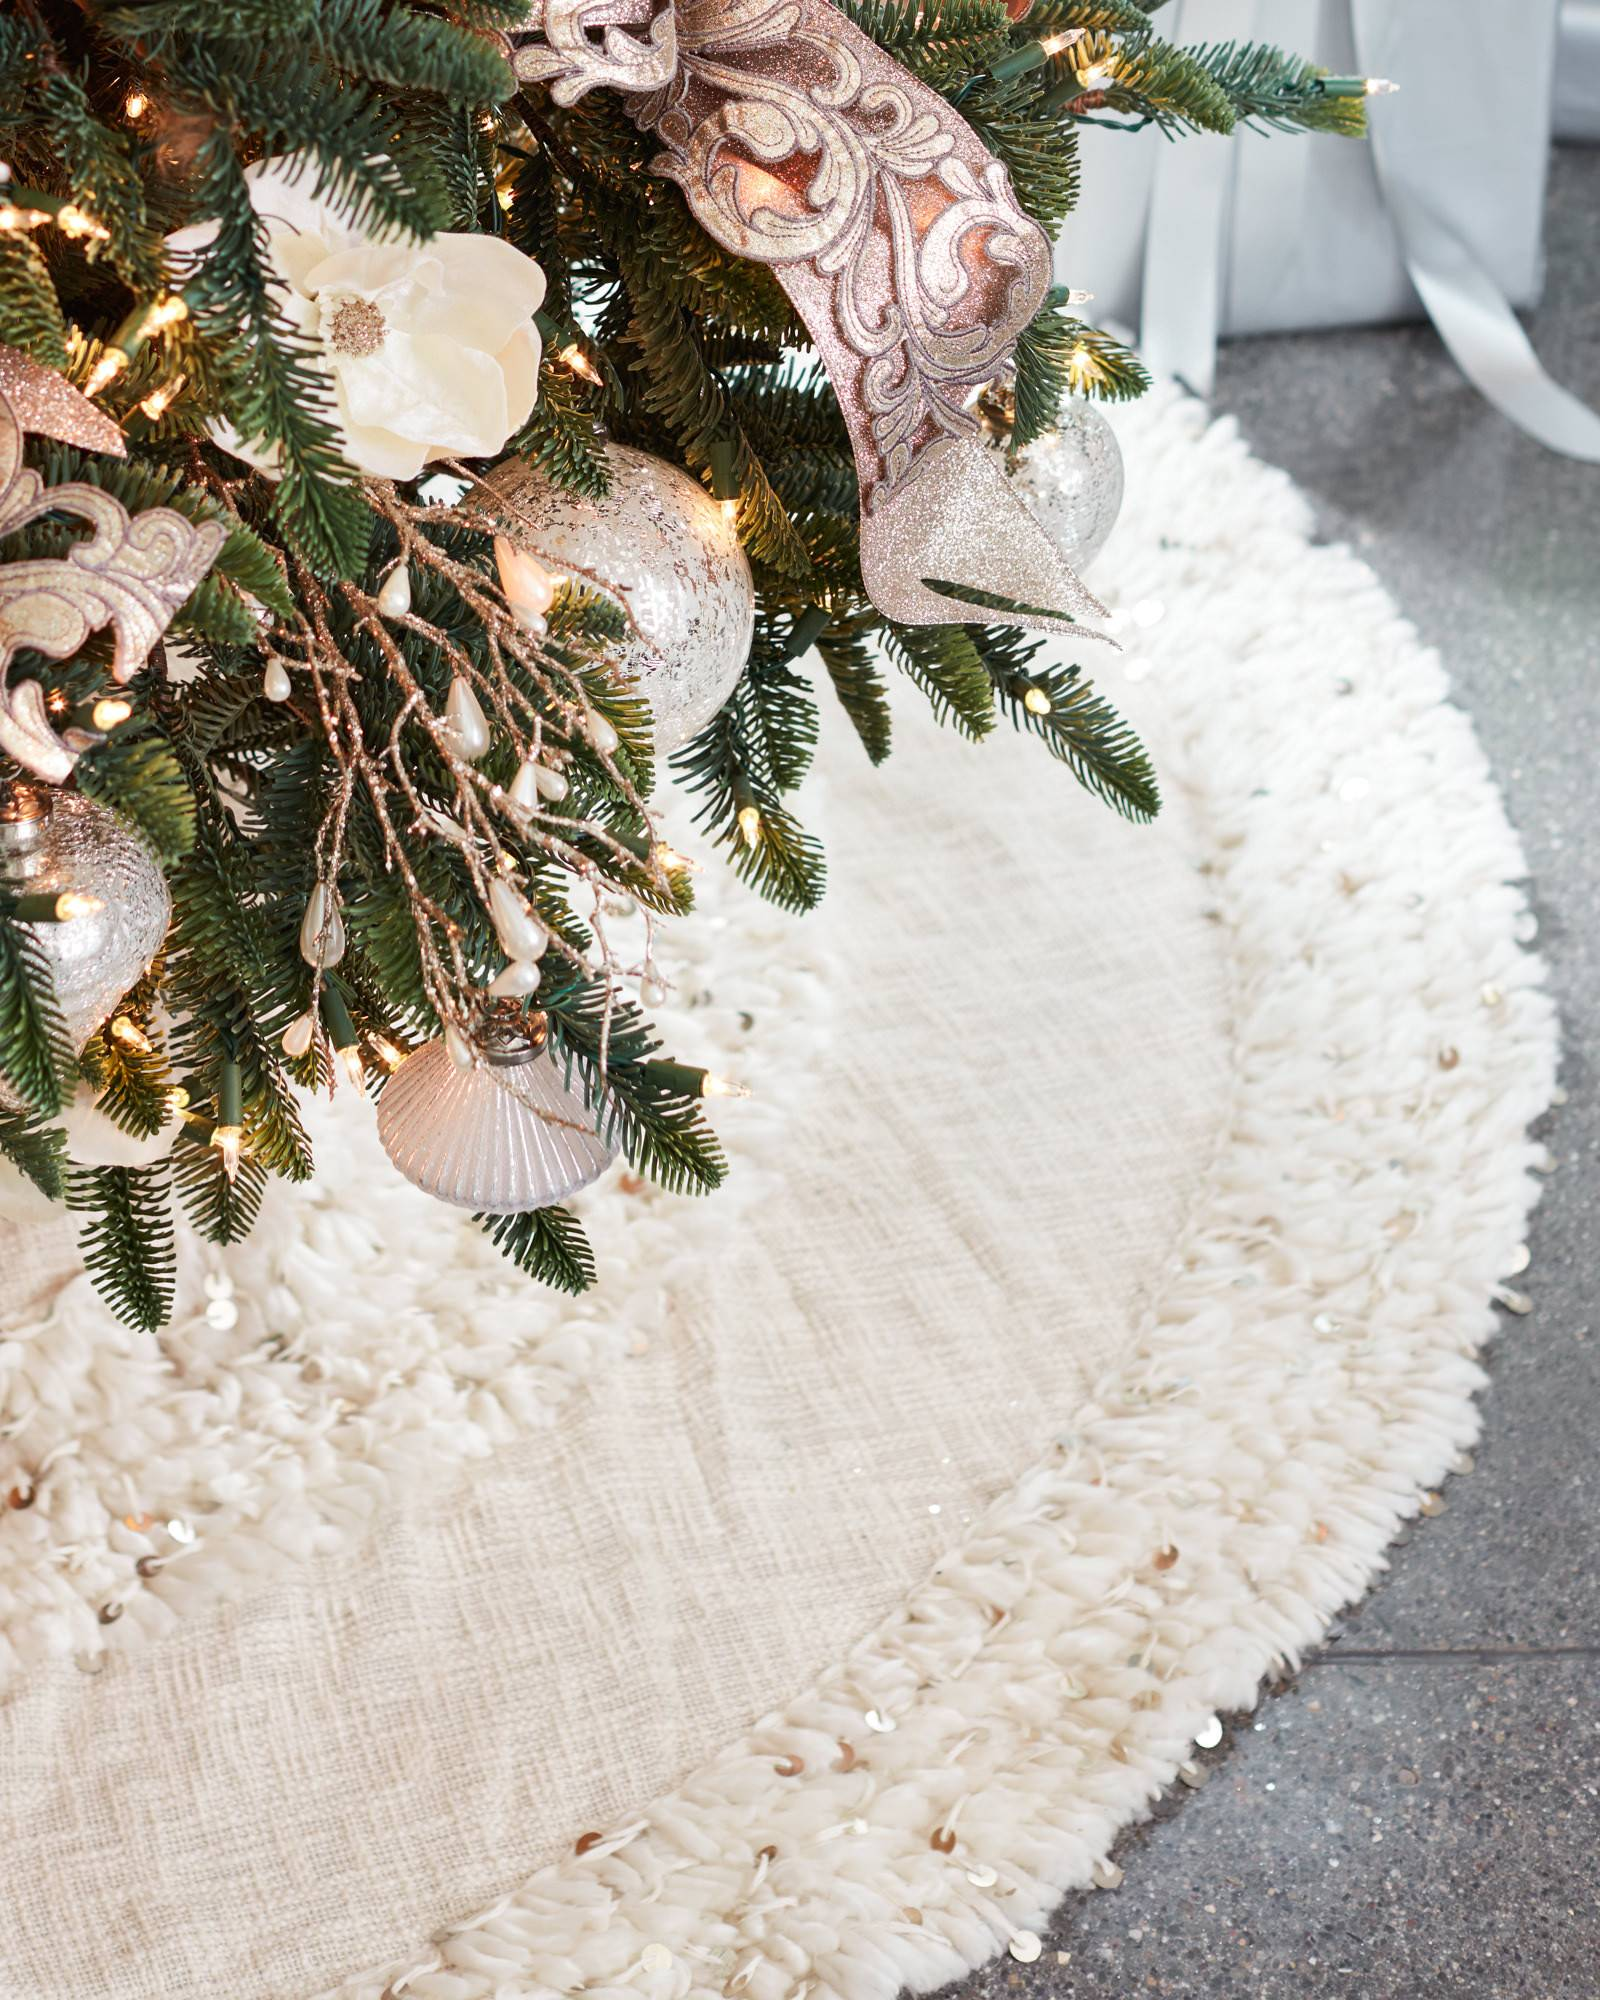 juliette fringed tree skirt main image - Cheap Christmas Tree Skirts